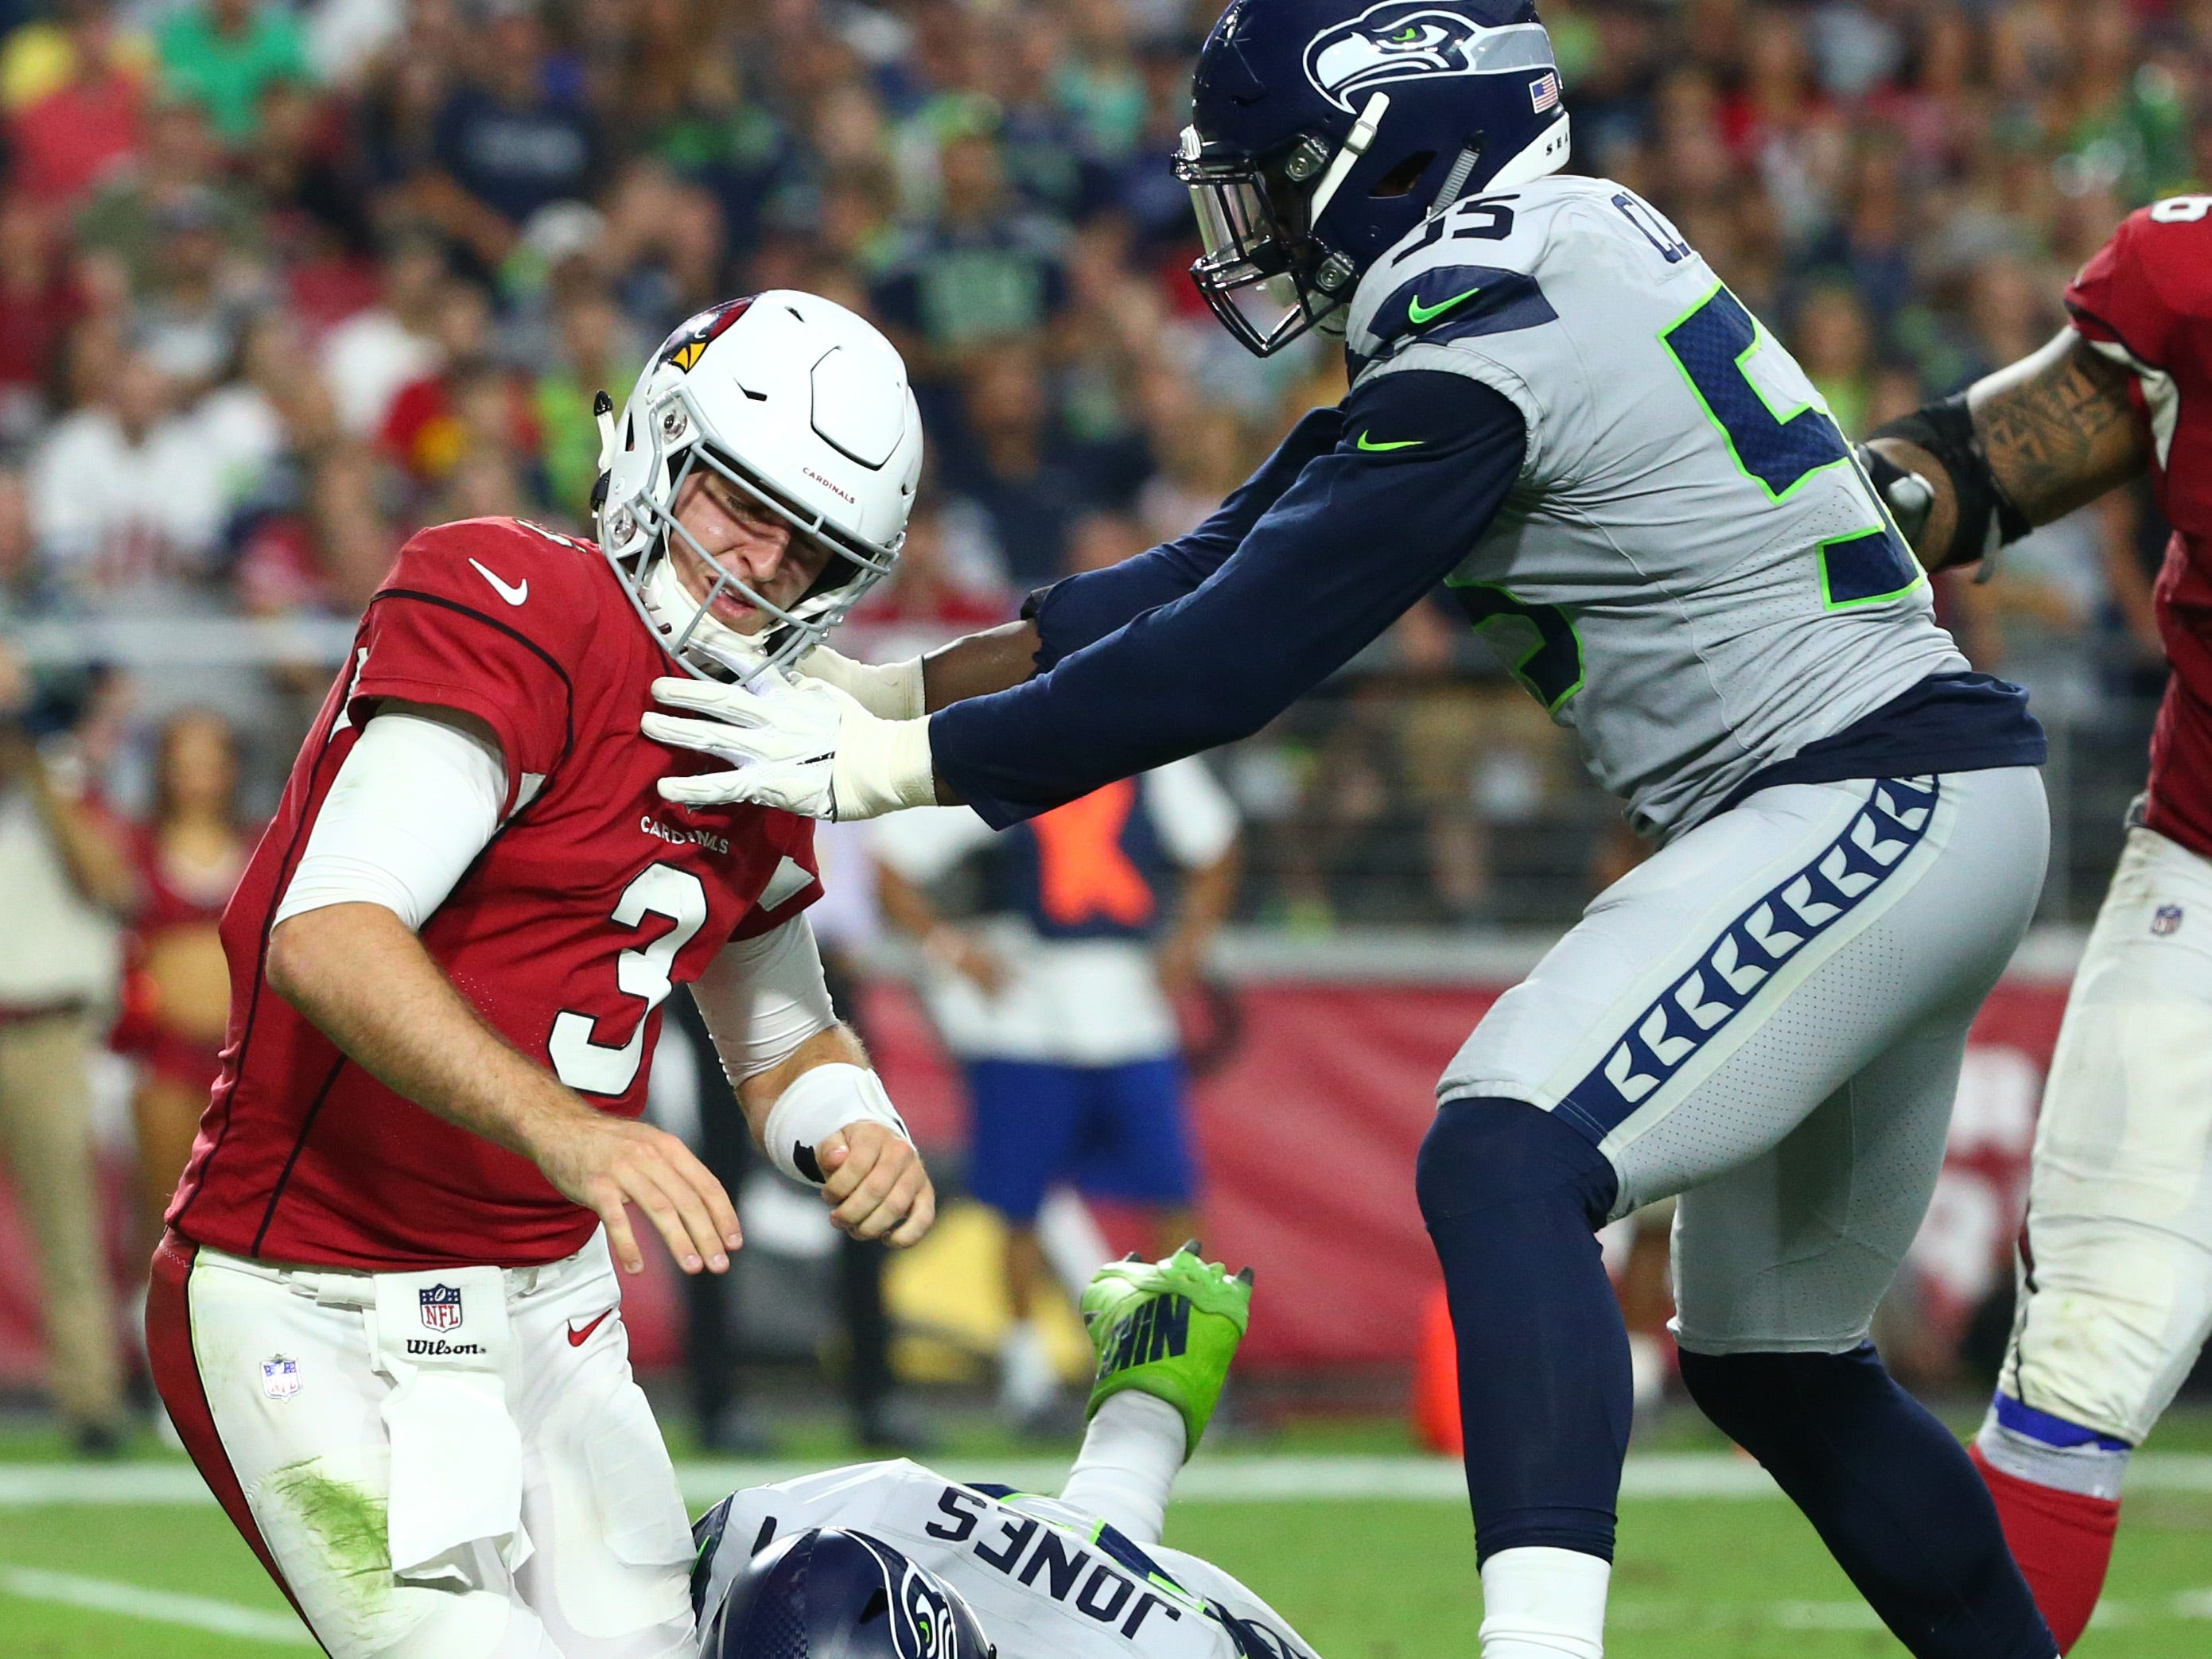 Arizona Cardinals quarterback Josh Rosin is pressured by the eattle Seahawks in the second half at State Farm Stadium in Glendale, Ariz.